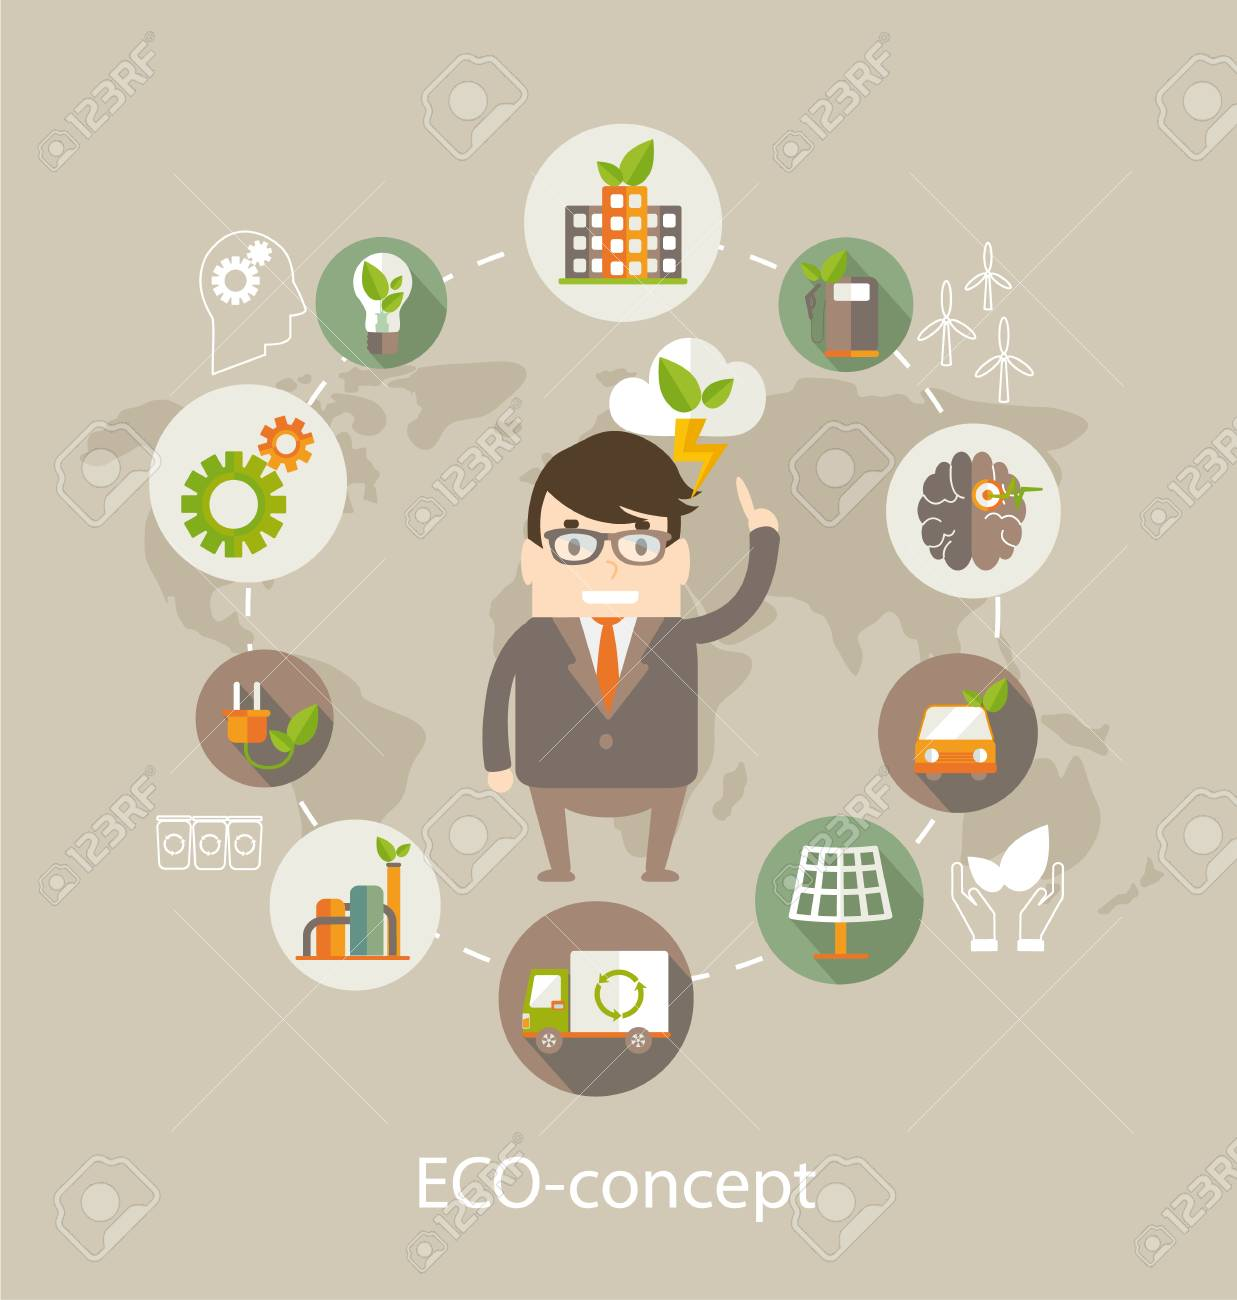 Eco Concept. Globe With Earth, Nature, Green, Recycling, Bicycle ...